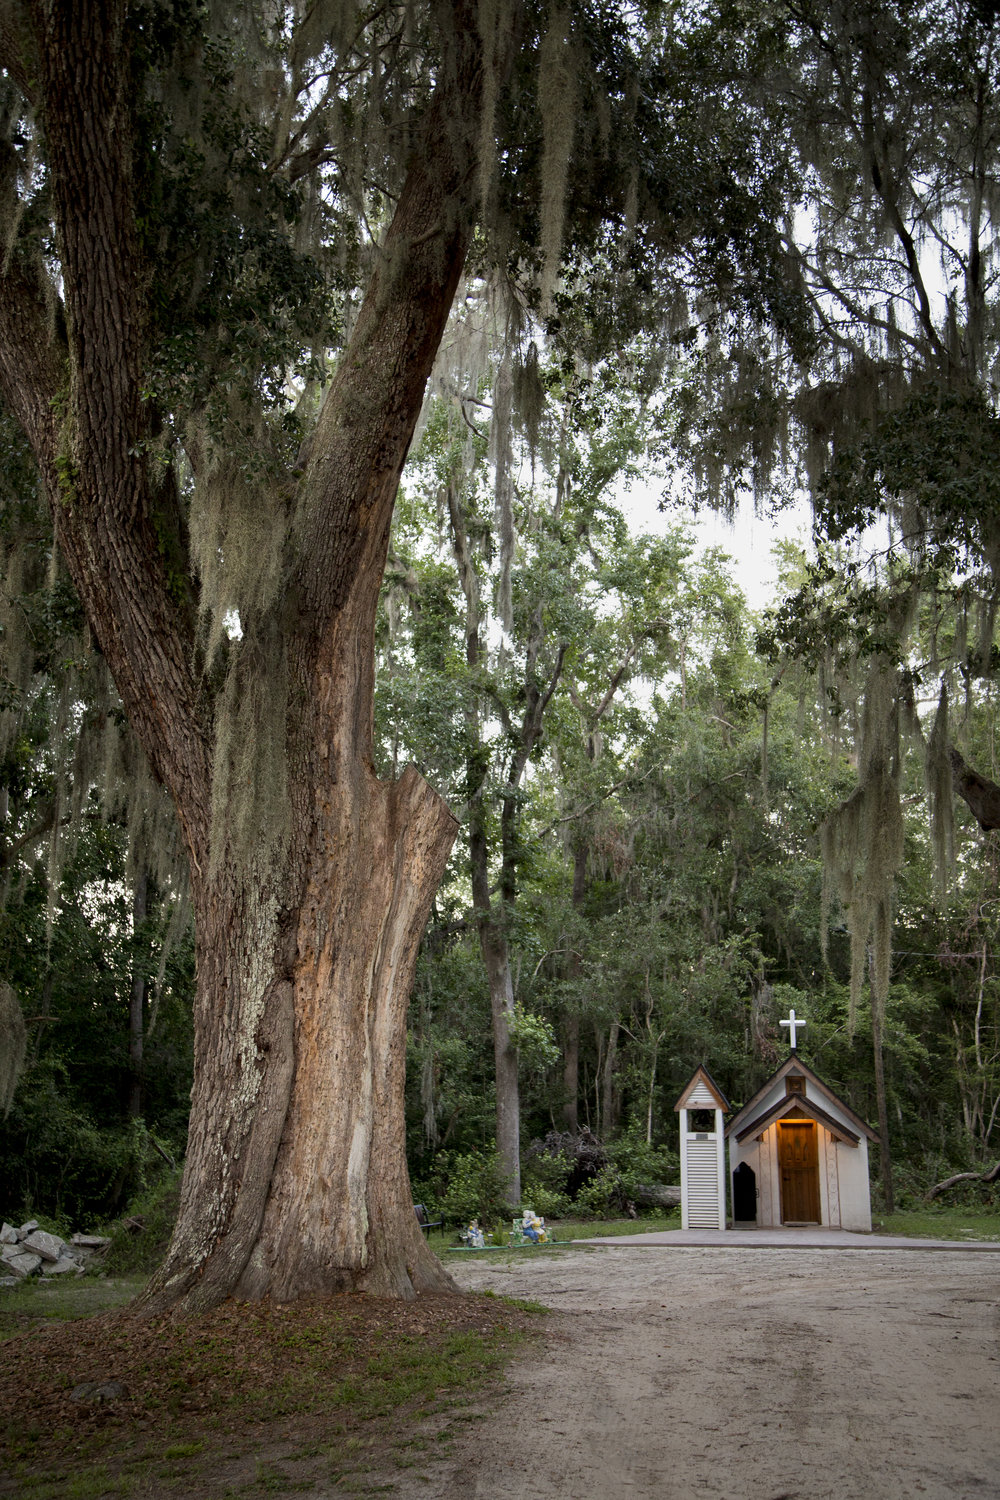 The Smallest Church in America is 10 feet wide and 15 feet long and seats only 12 people. It was built in 1949 by Anges Harper, a local grocer who wanted to use her meager means to serve God.